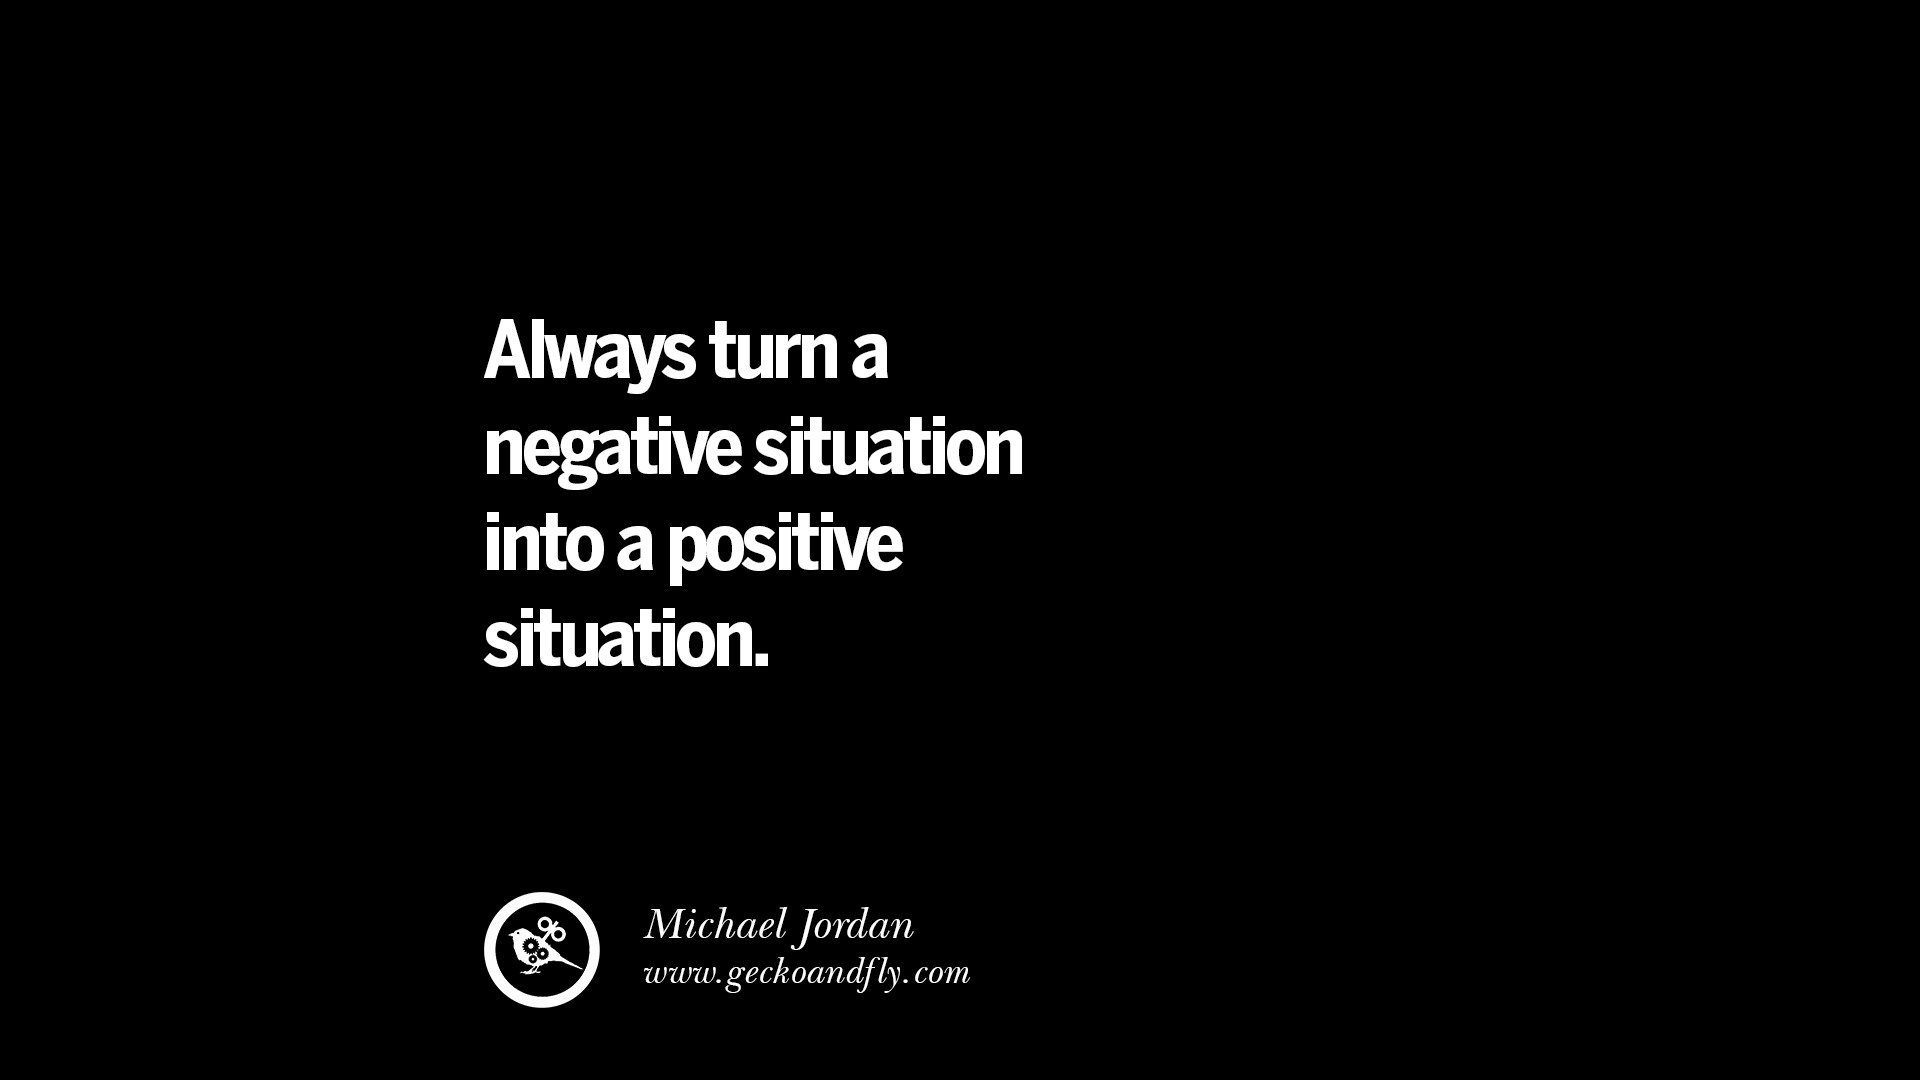 Turning A Bad Situation Into A Good One Quotes: 20 Inspirational Quotes On Positive Thinking Power And